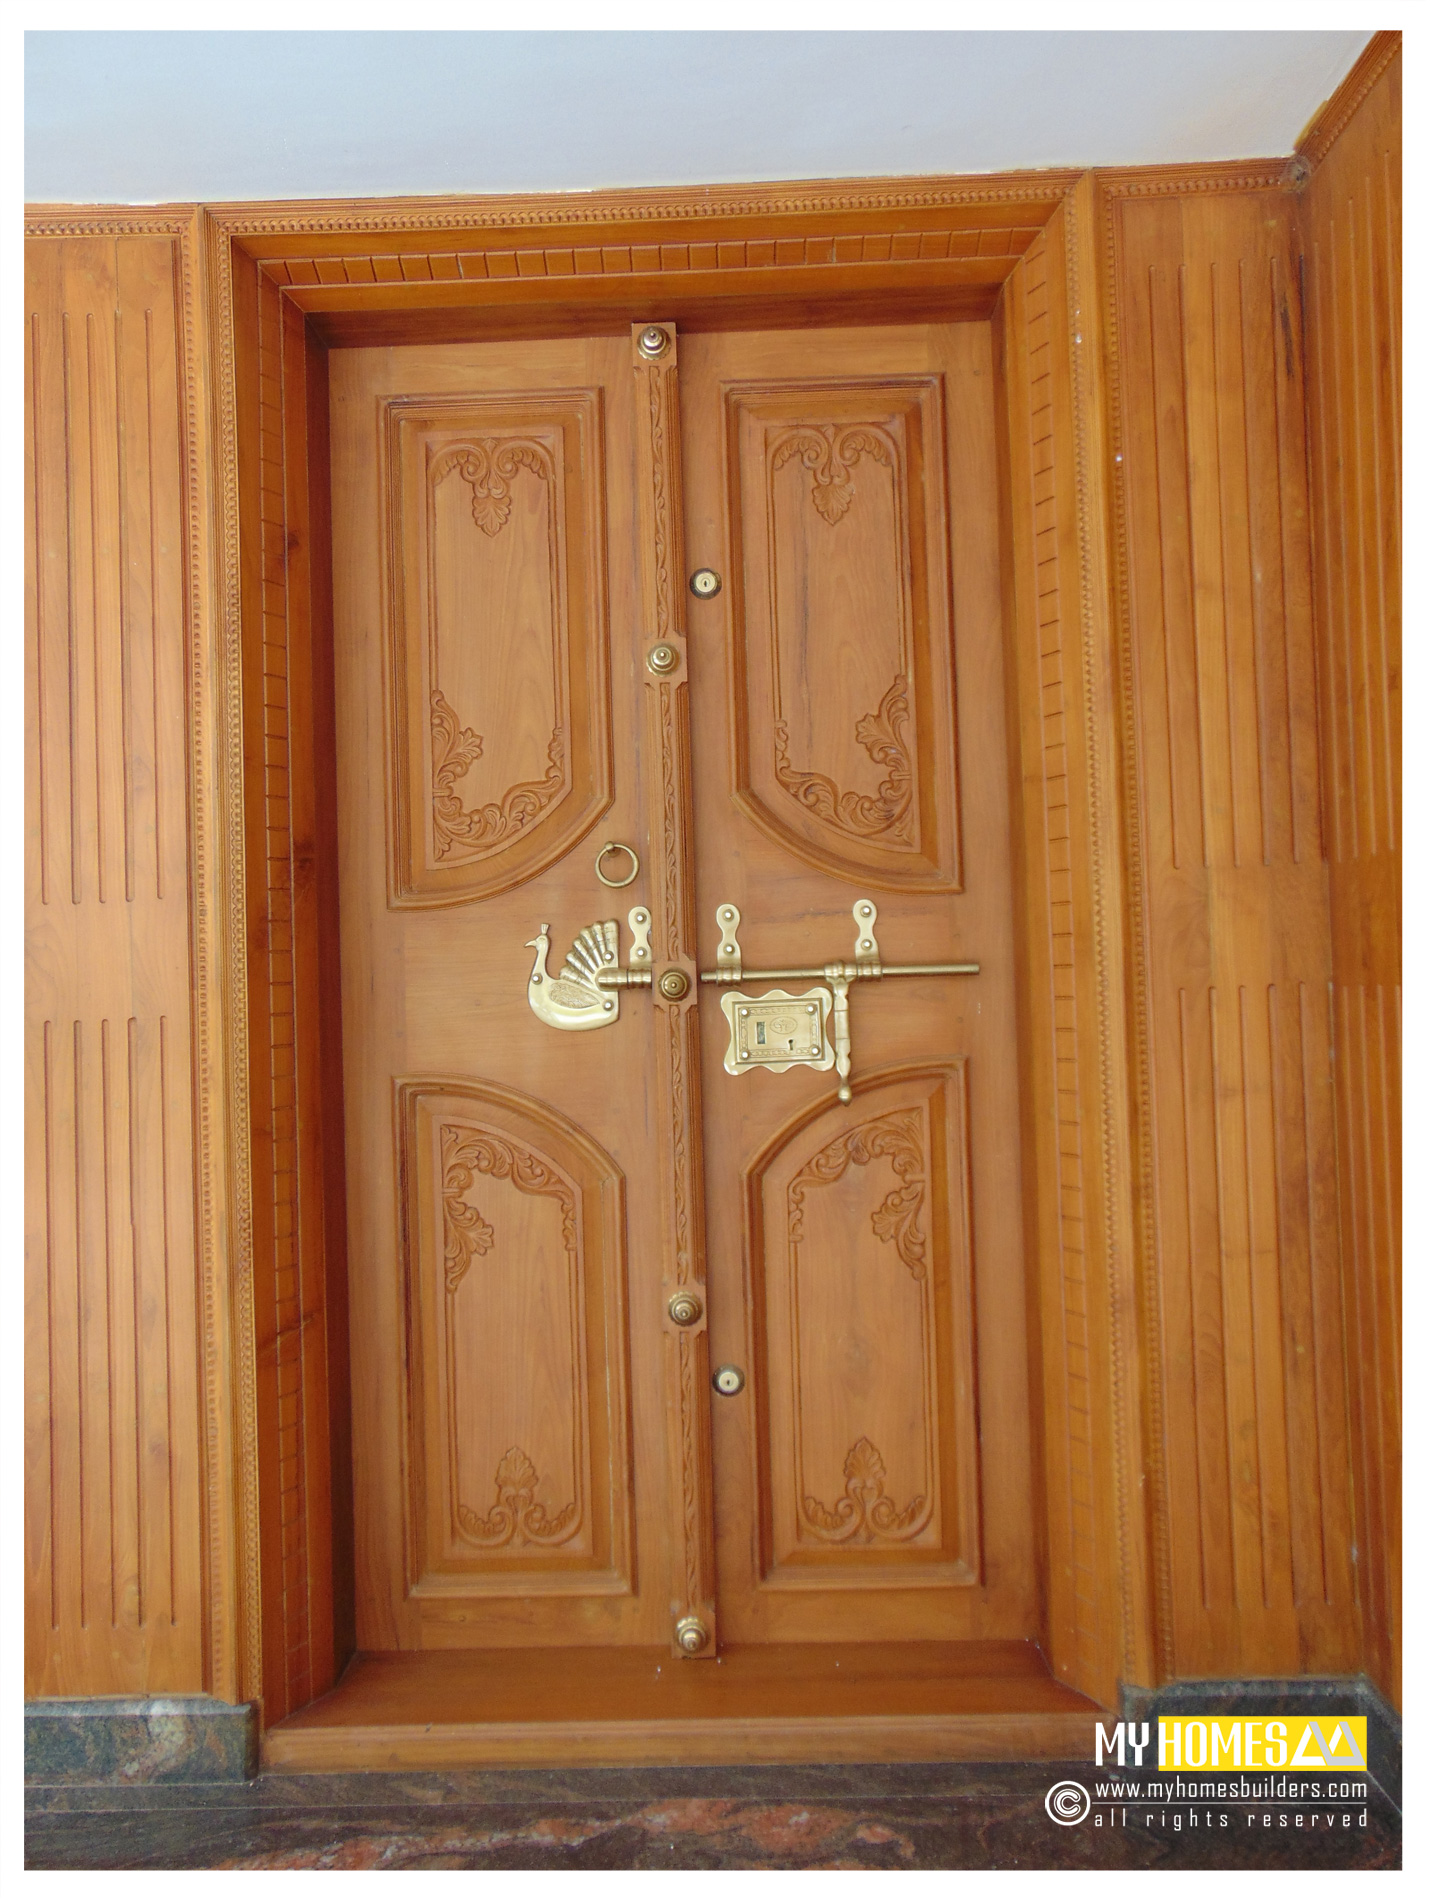 New idea for homes main door designs in kerala india for Home front entry doors